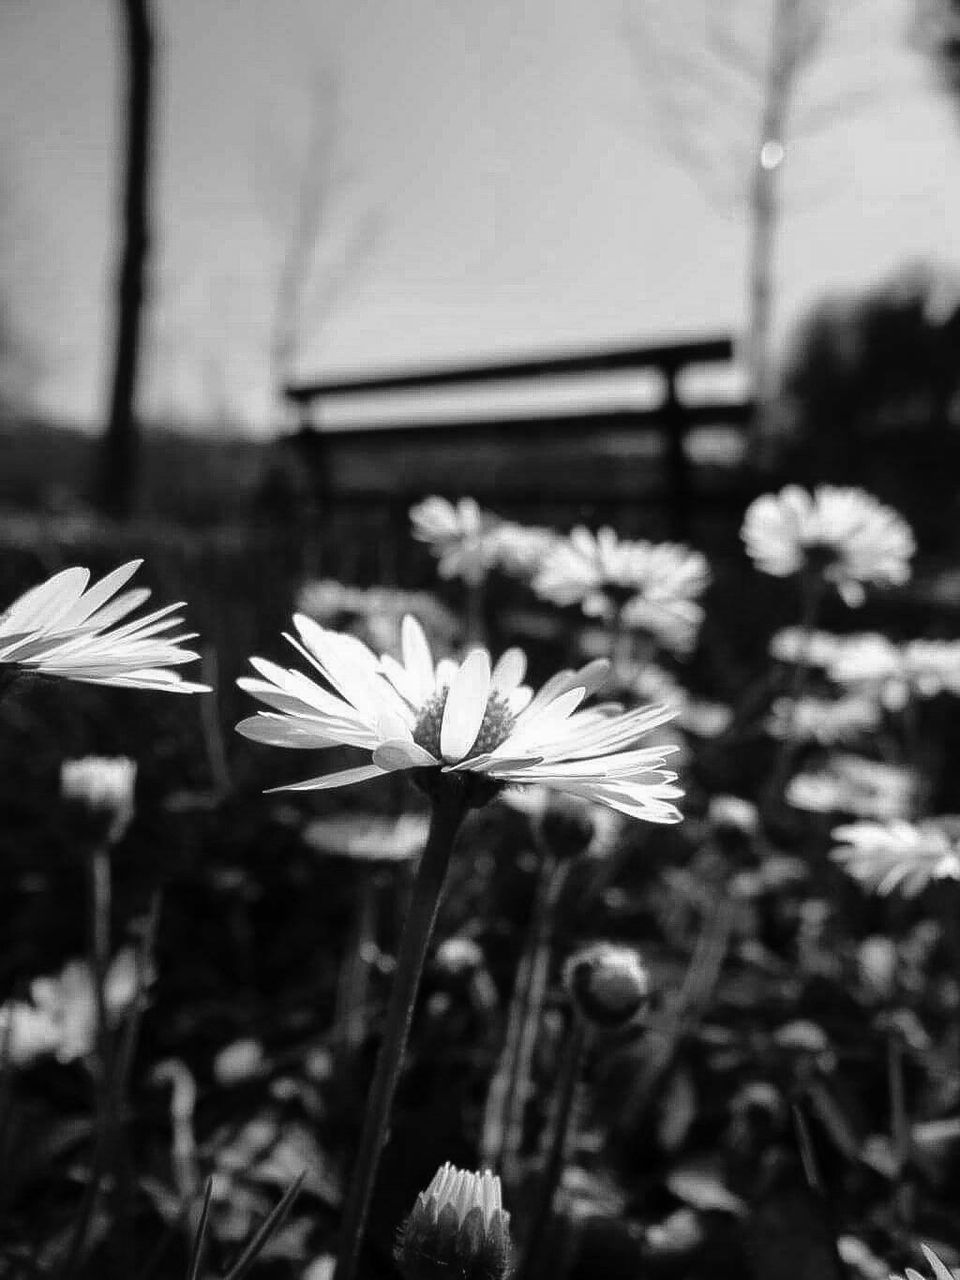 flower, fragility, petal, flower head, freshness, nature, growth, beauty in nature, blooming, focus on foreground, day, plant, stem, outdoors, close-up, no people